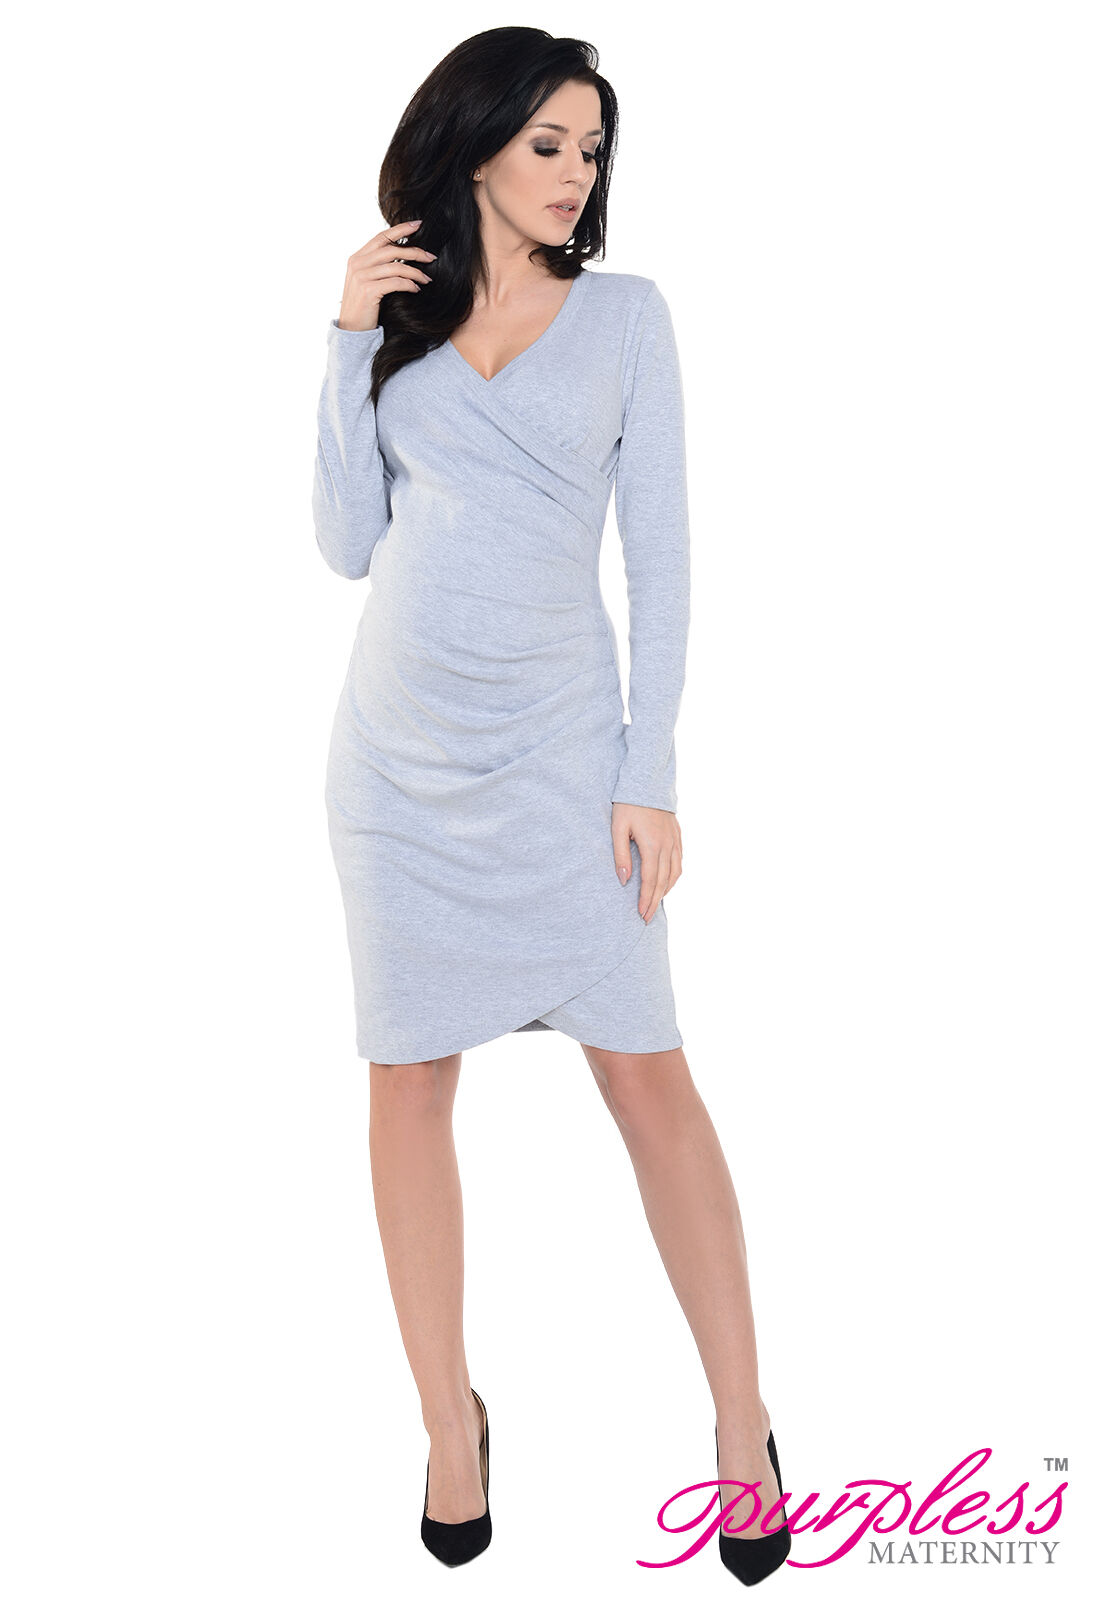 Purpless maternity contemporary side pleated long sleeves picture 3 of 5 ombrellifo Image collections